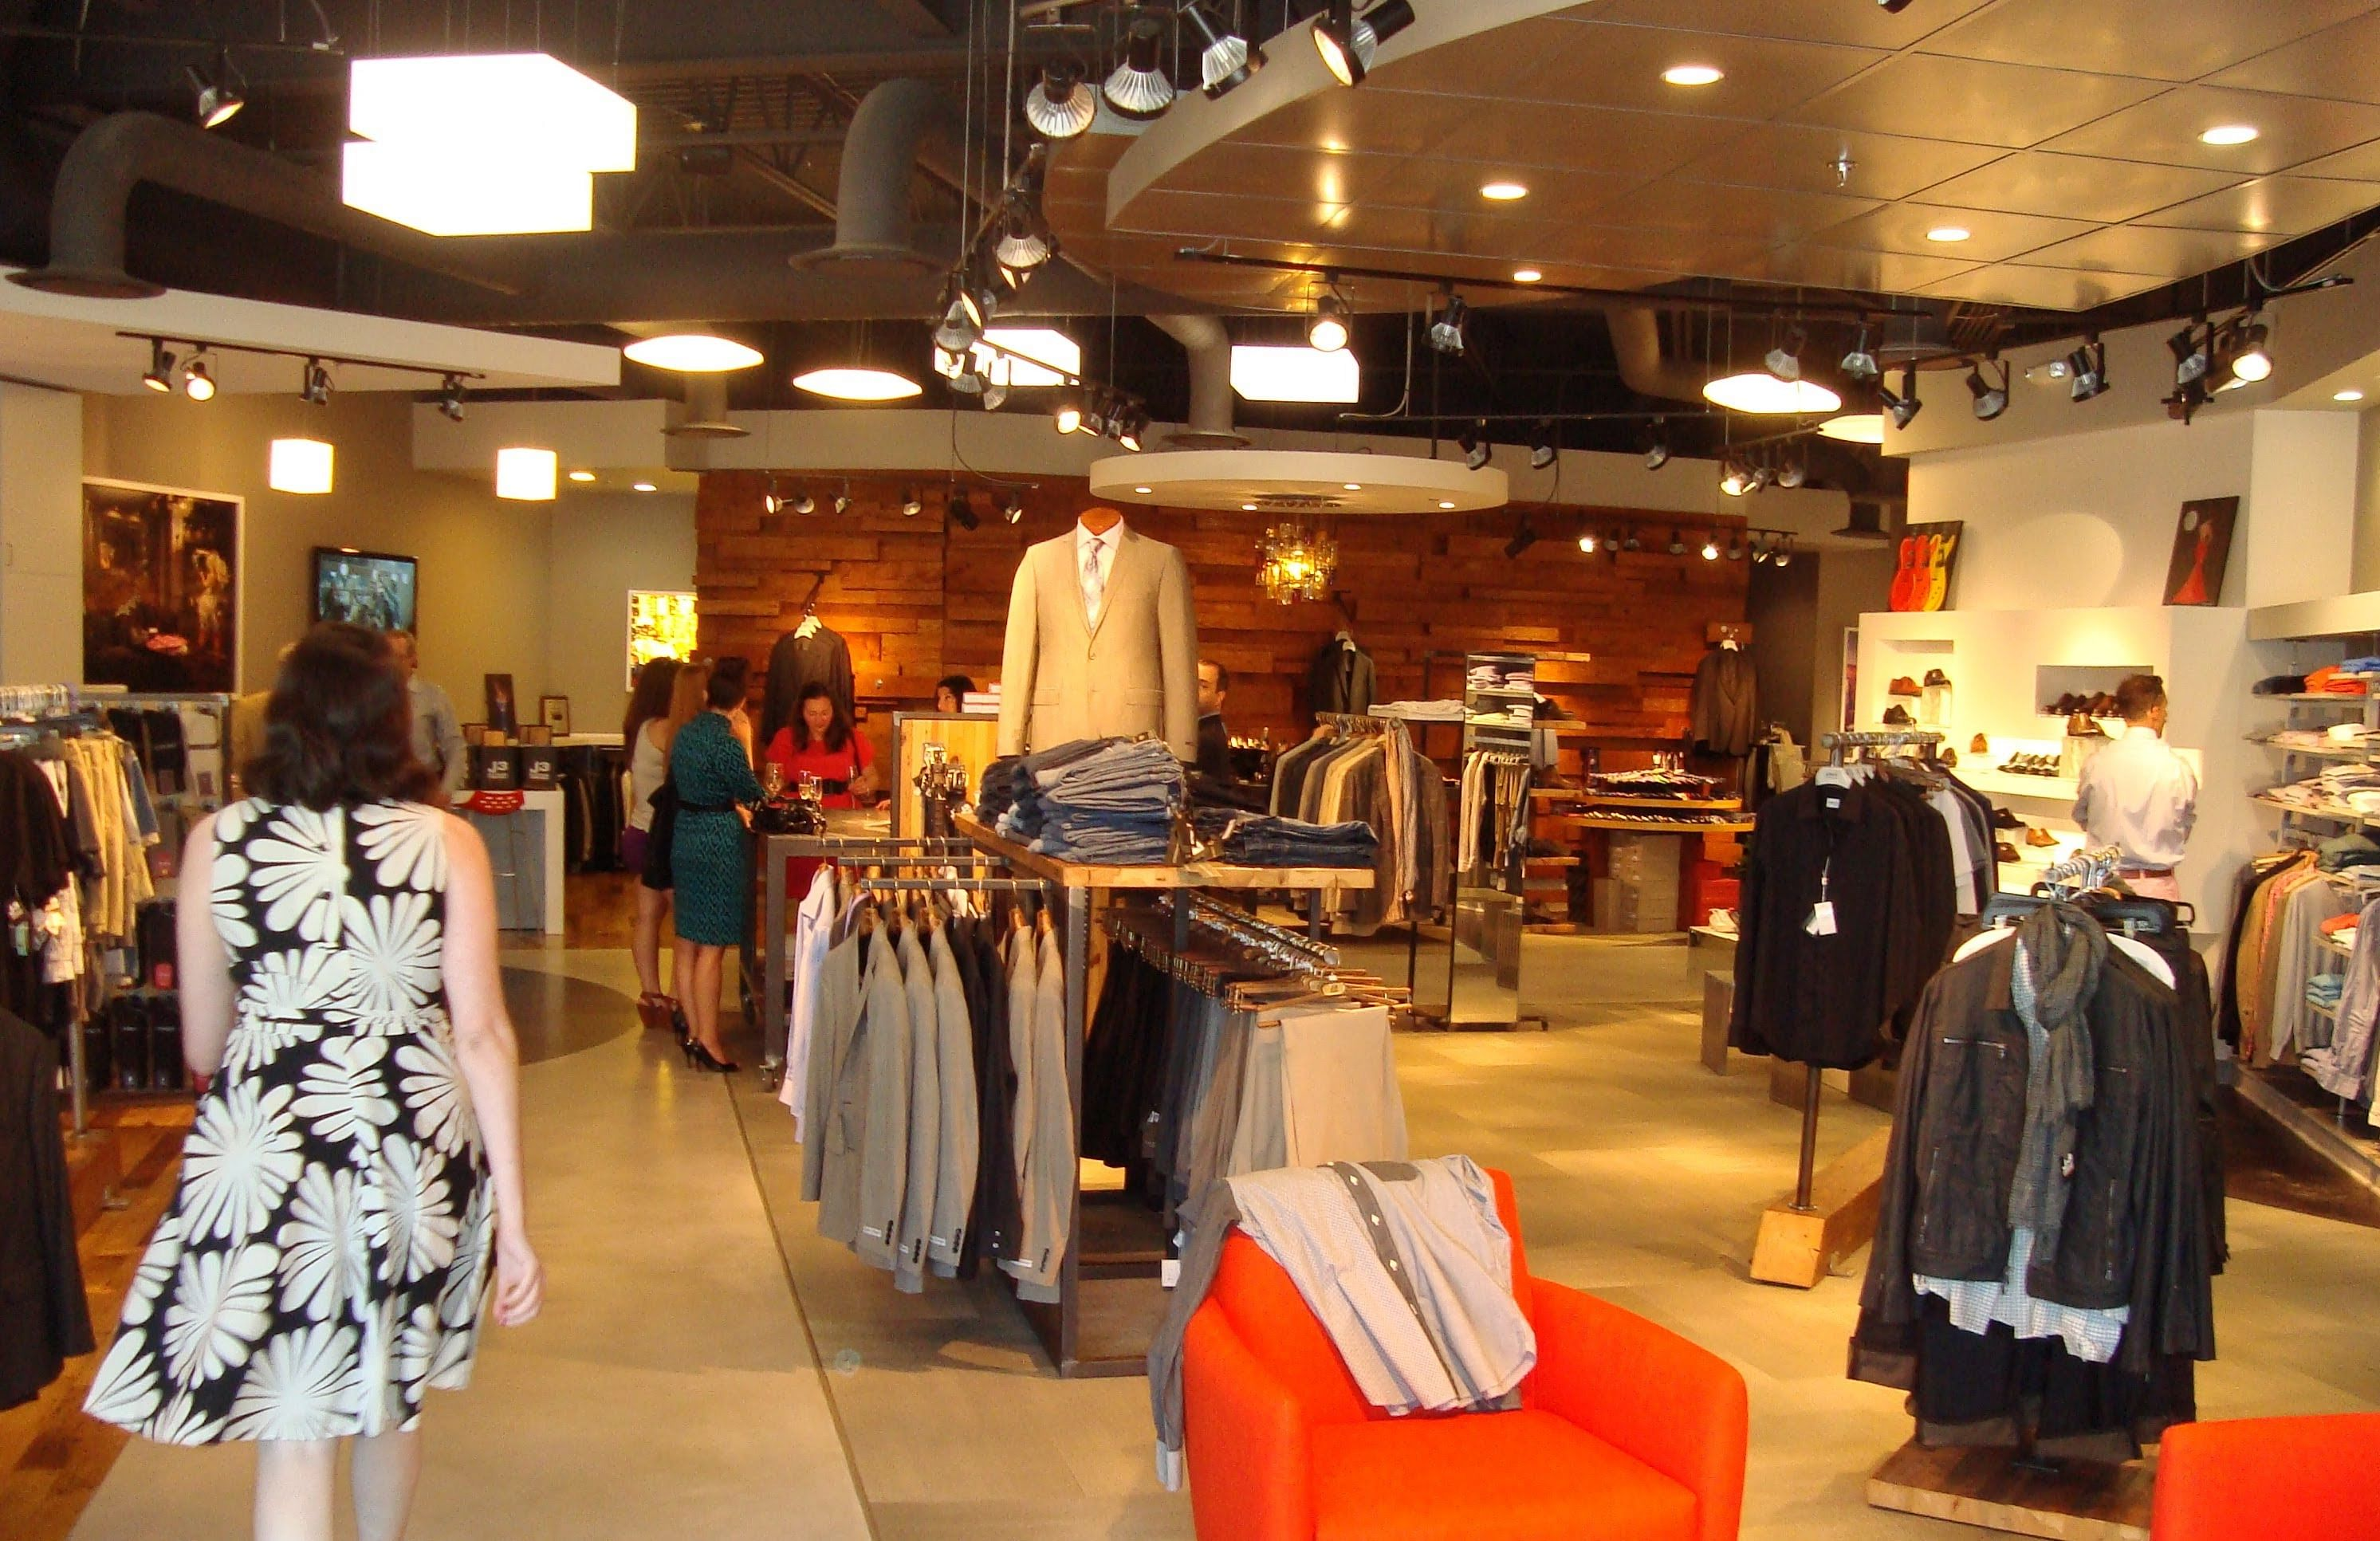 Clothing Business Loan, business loan for clothing store